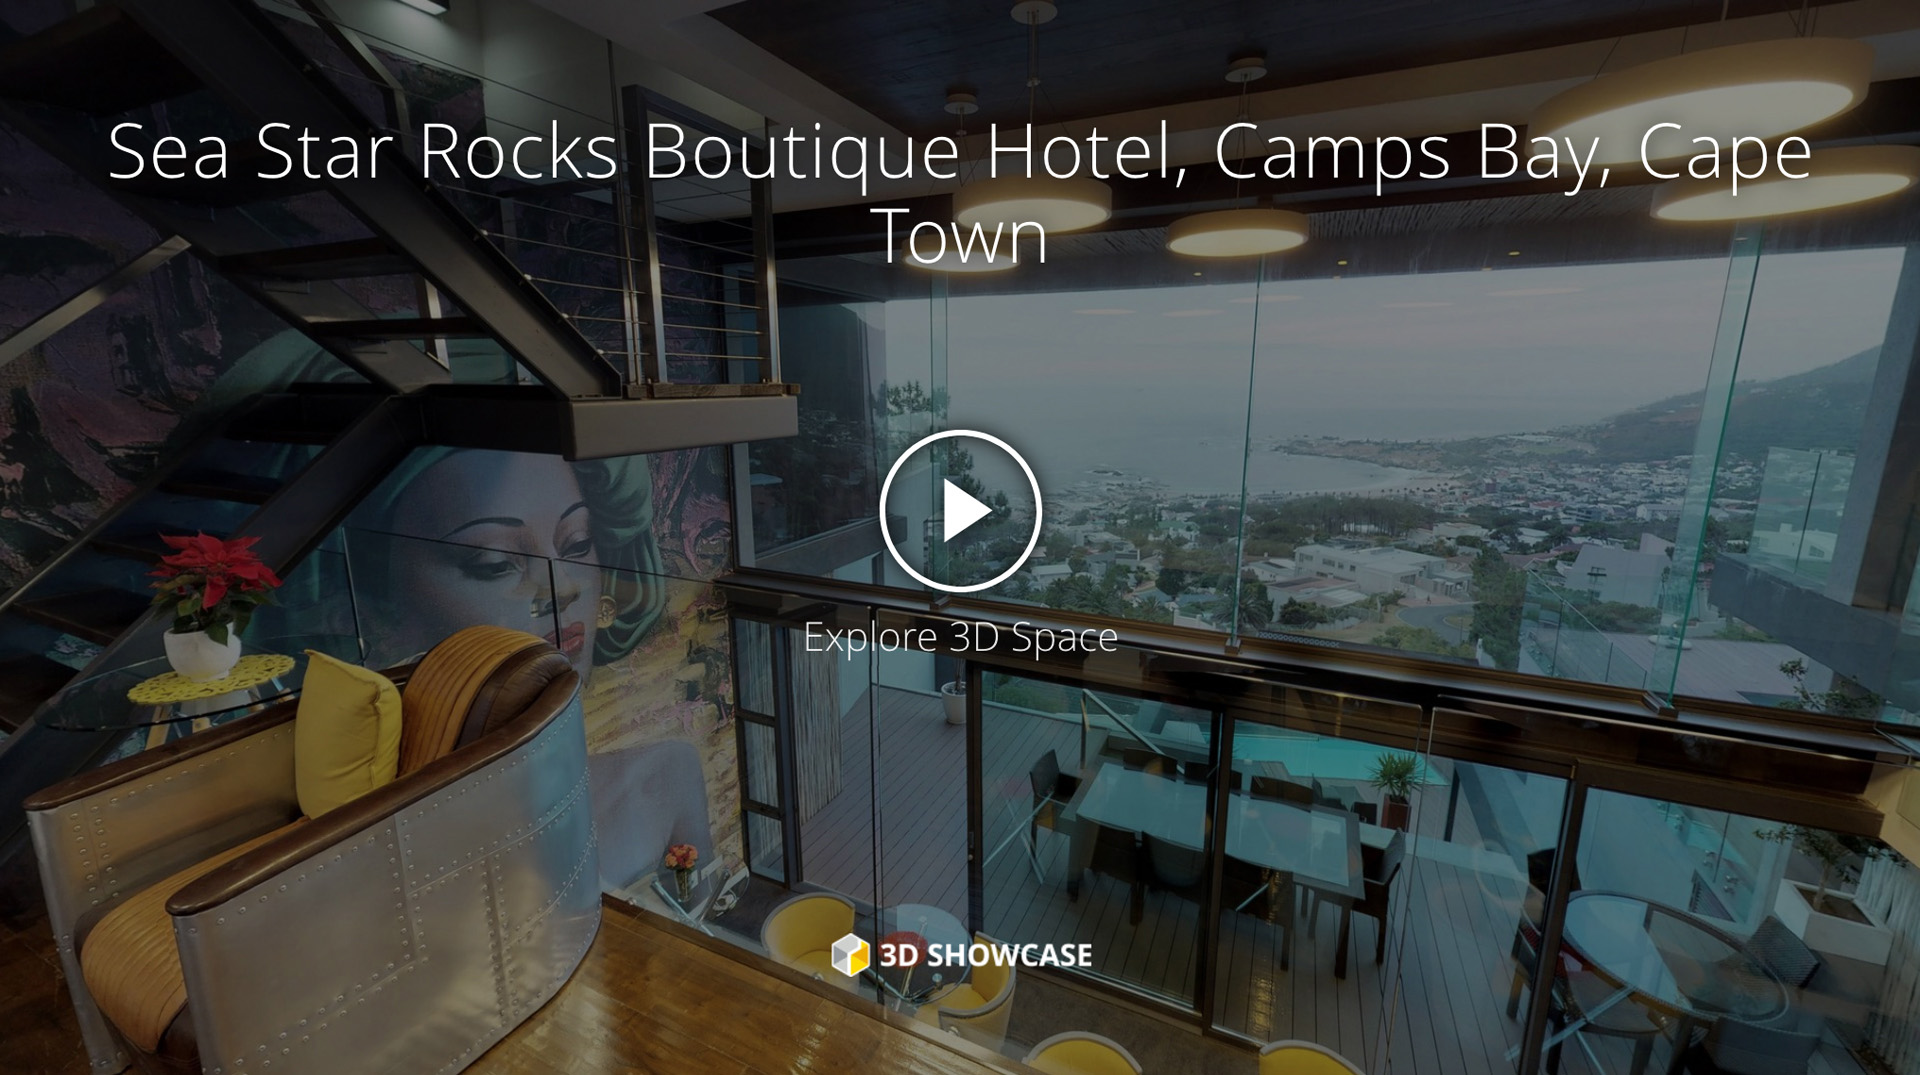 Hotels, Guesthouses & B&Bs